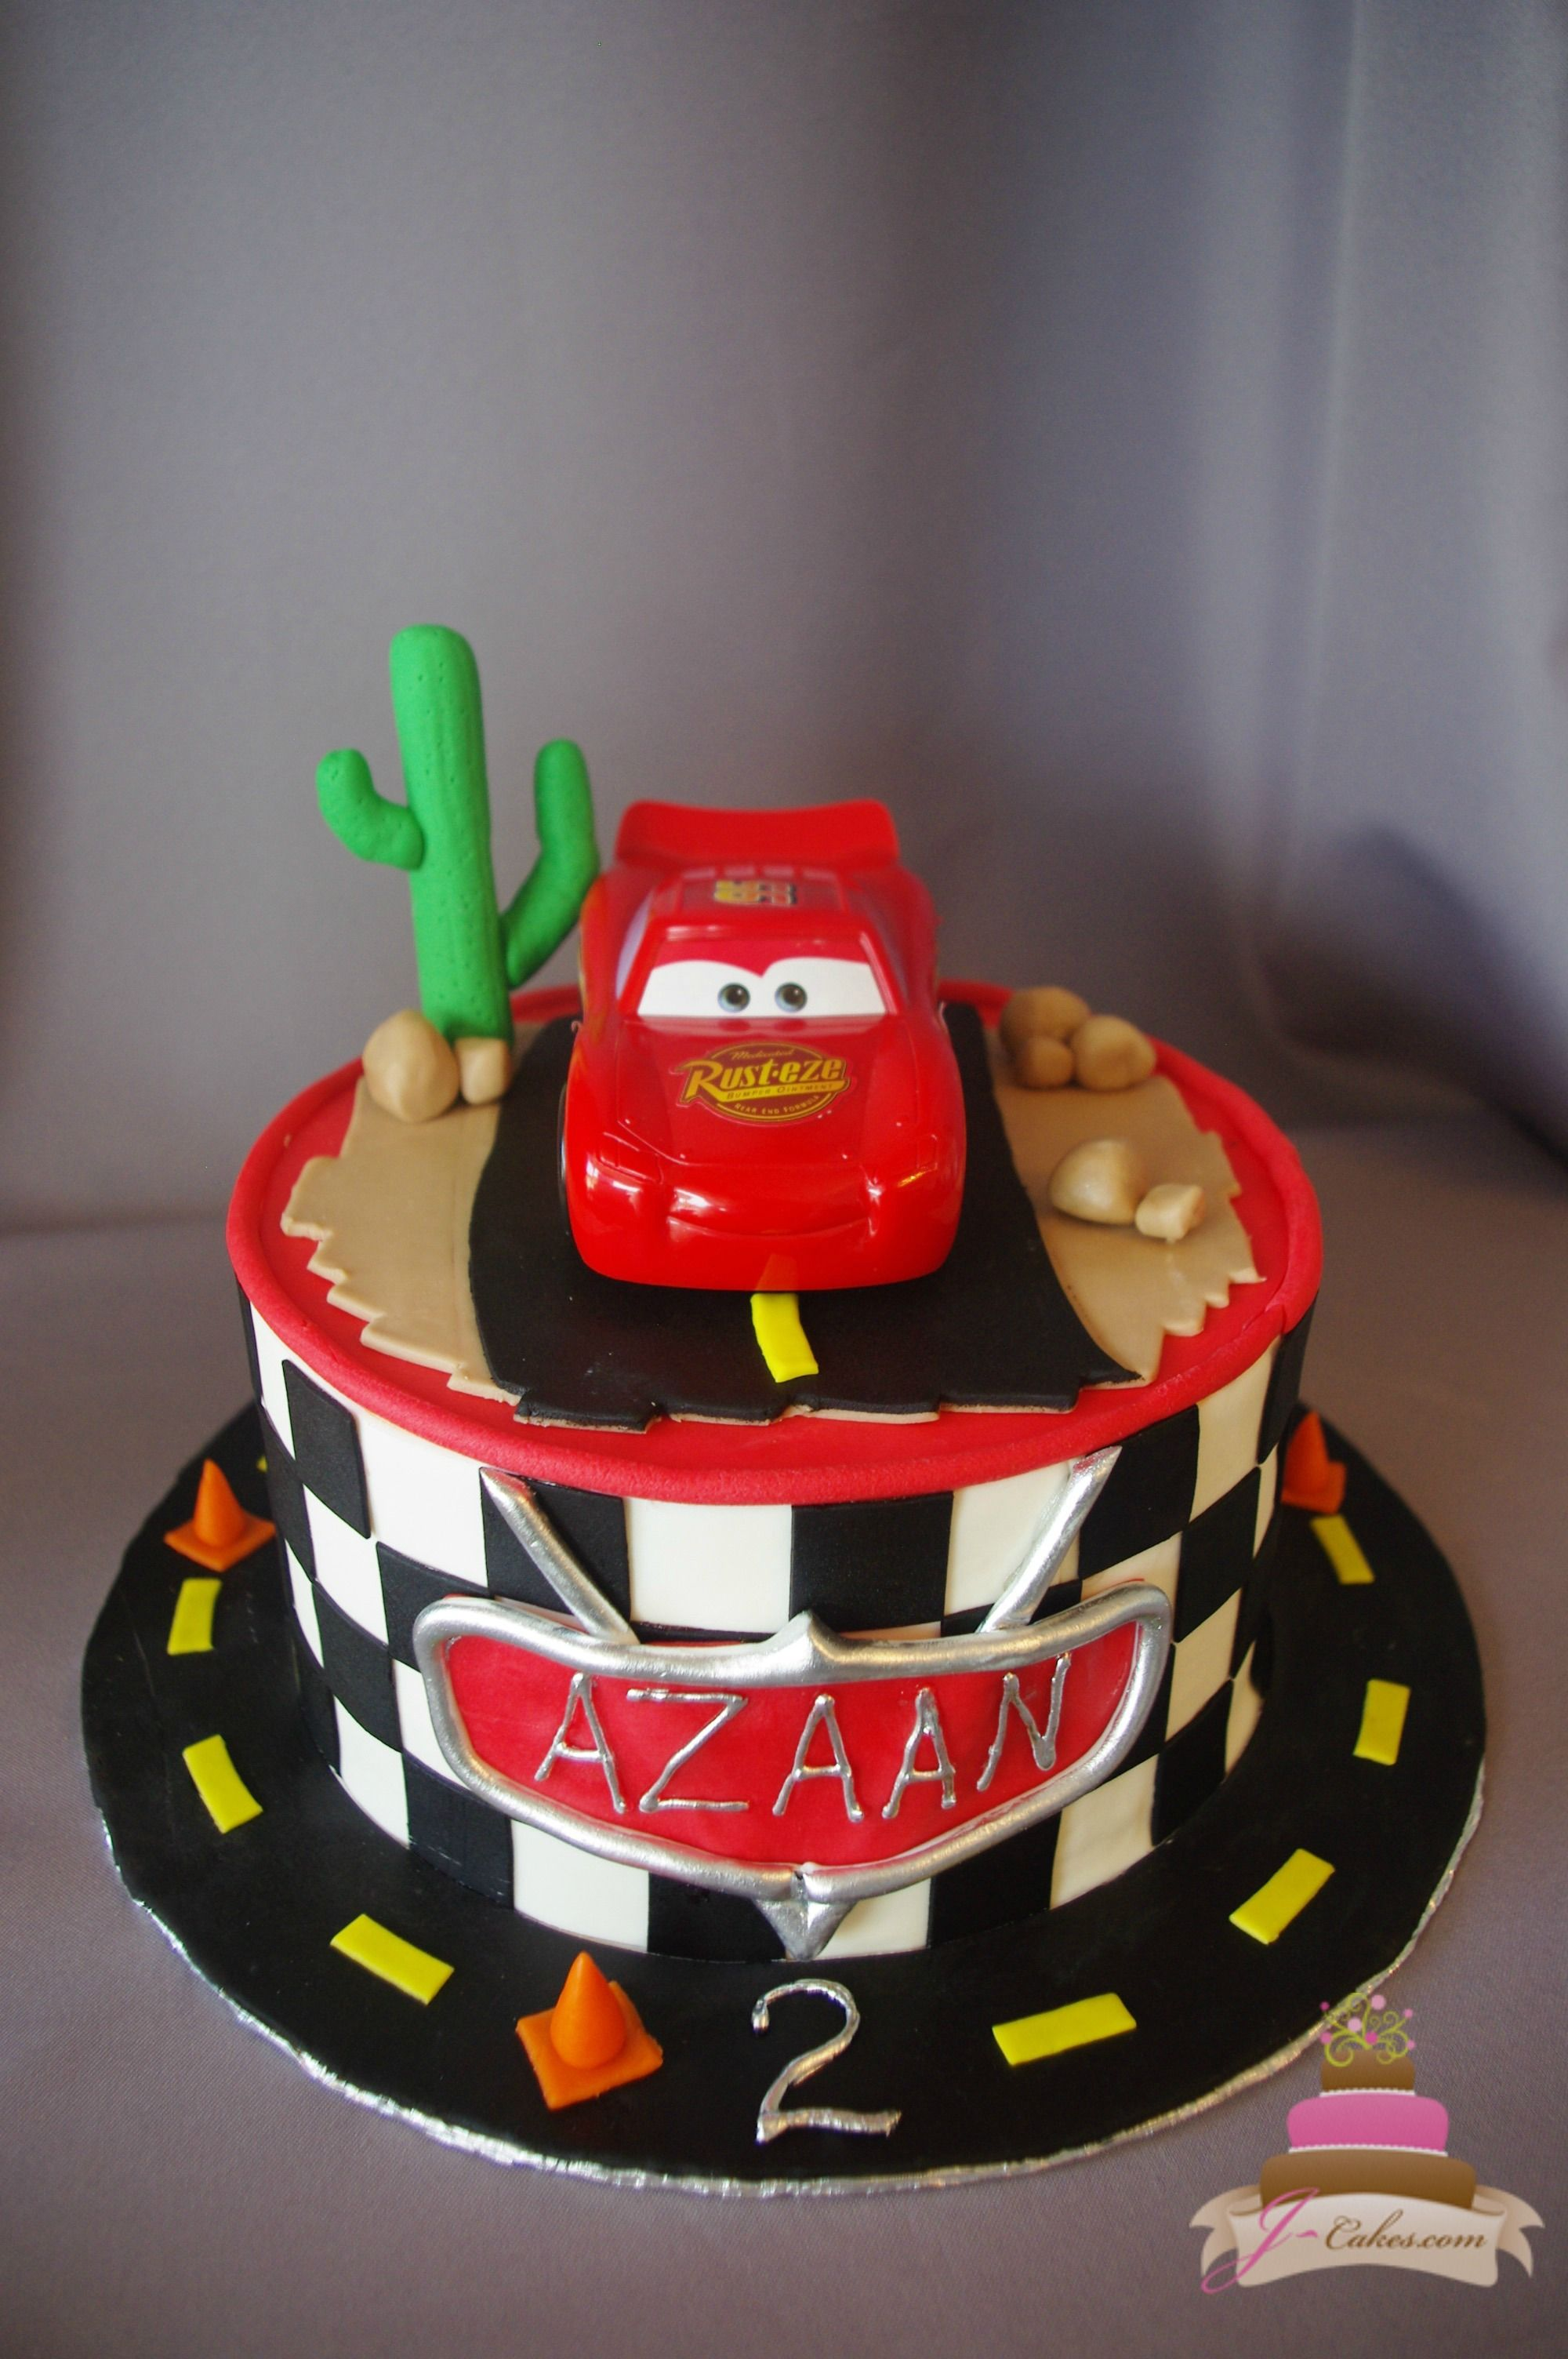 Wondrous Enchanting Childrens Cakes In Ct Cars Theme Cake Cake Themed Funny Birthday Cards Online Bapapcheapnameinfo